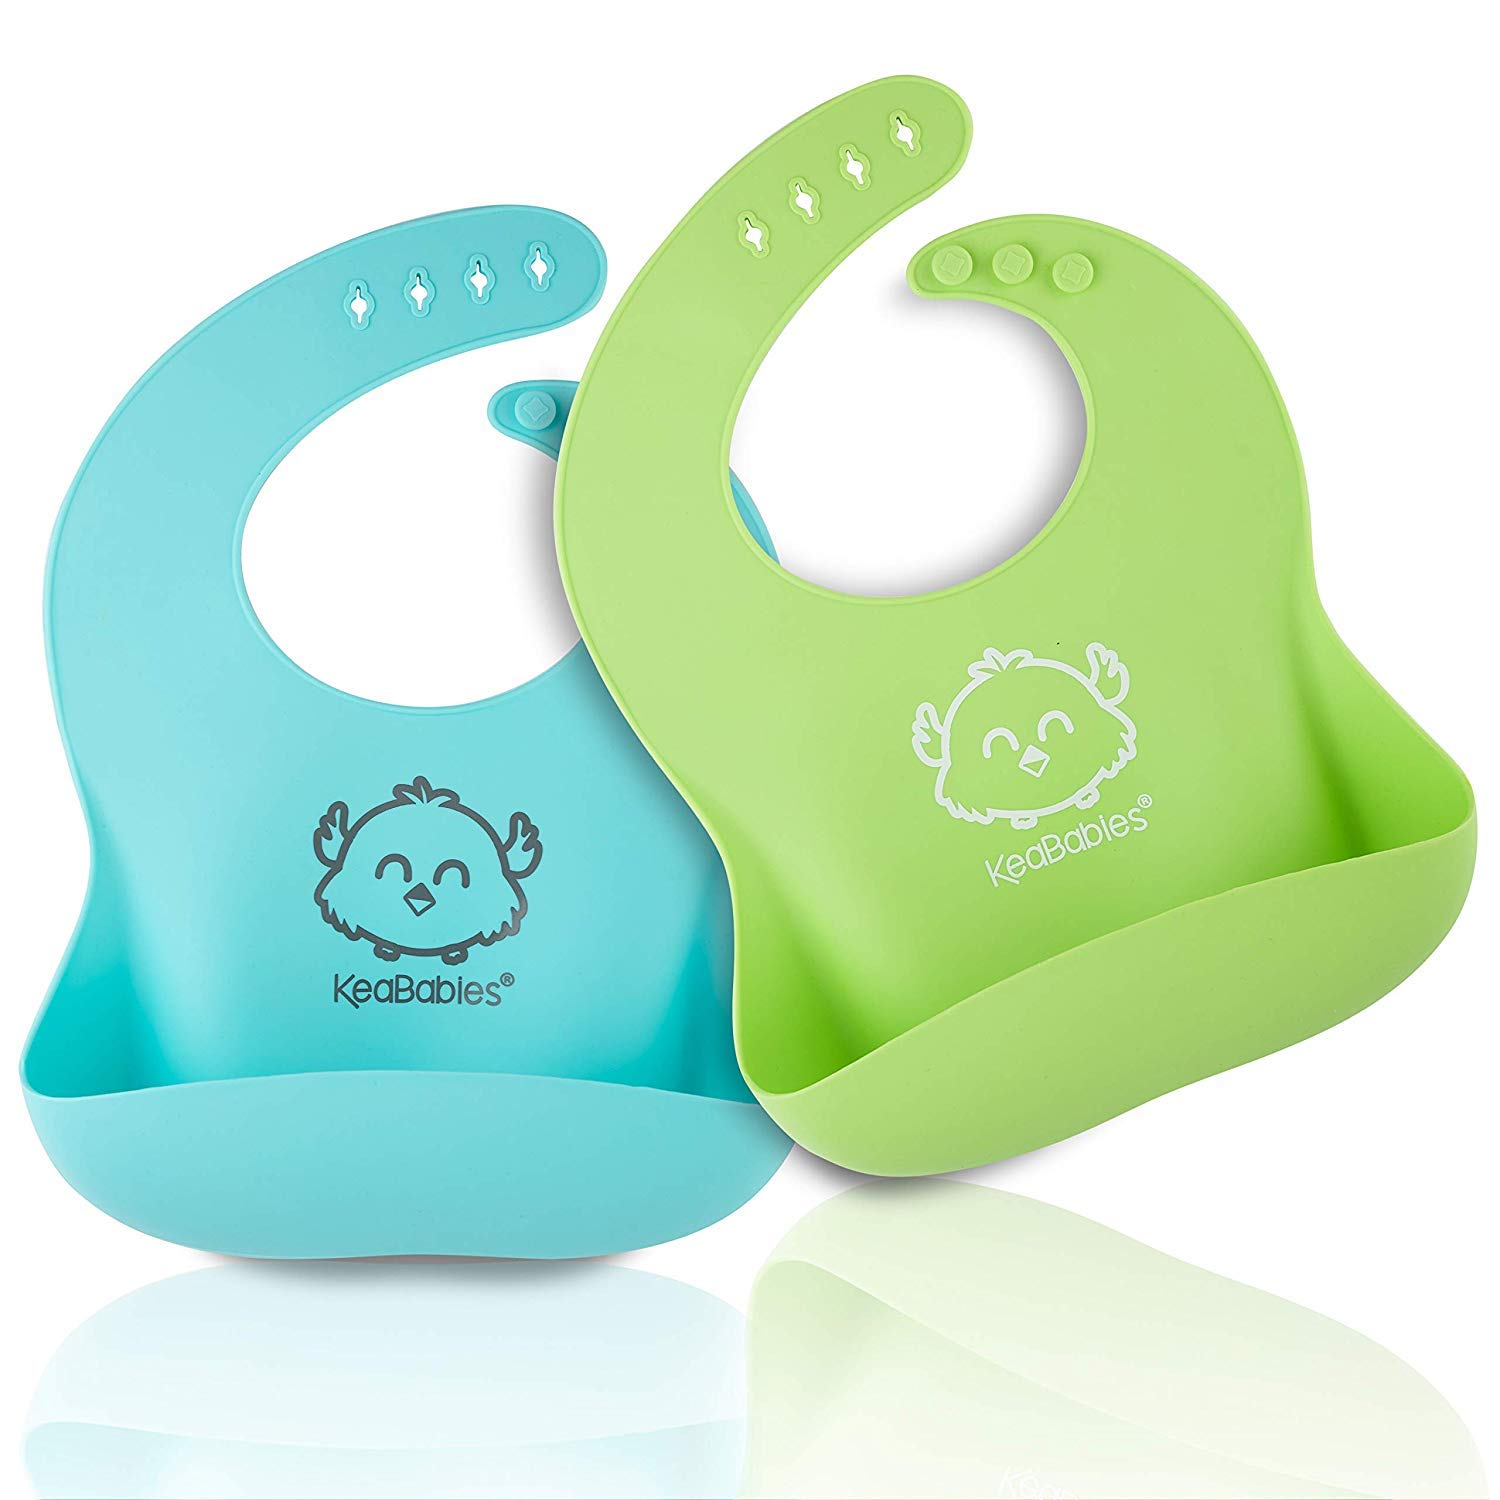 Silicone Baby Bibs - Waterproof, Easy Wipe Silicone Bib for Babies, Toddlers - Baby Feeding Bibs with Large Food Catcher Pocket - Travel Bibs Set for Boys, Girls - Food Grade BPA Free (Cloud Nine)